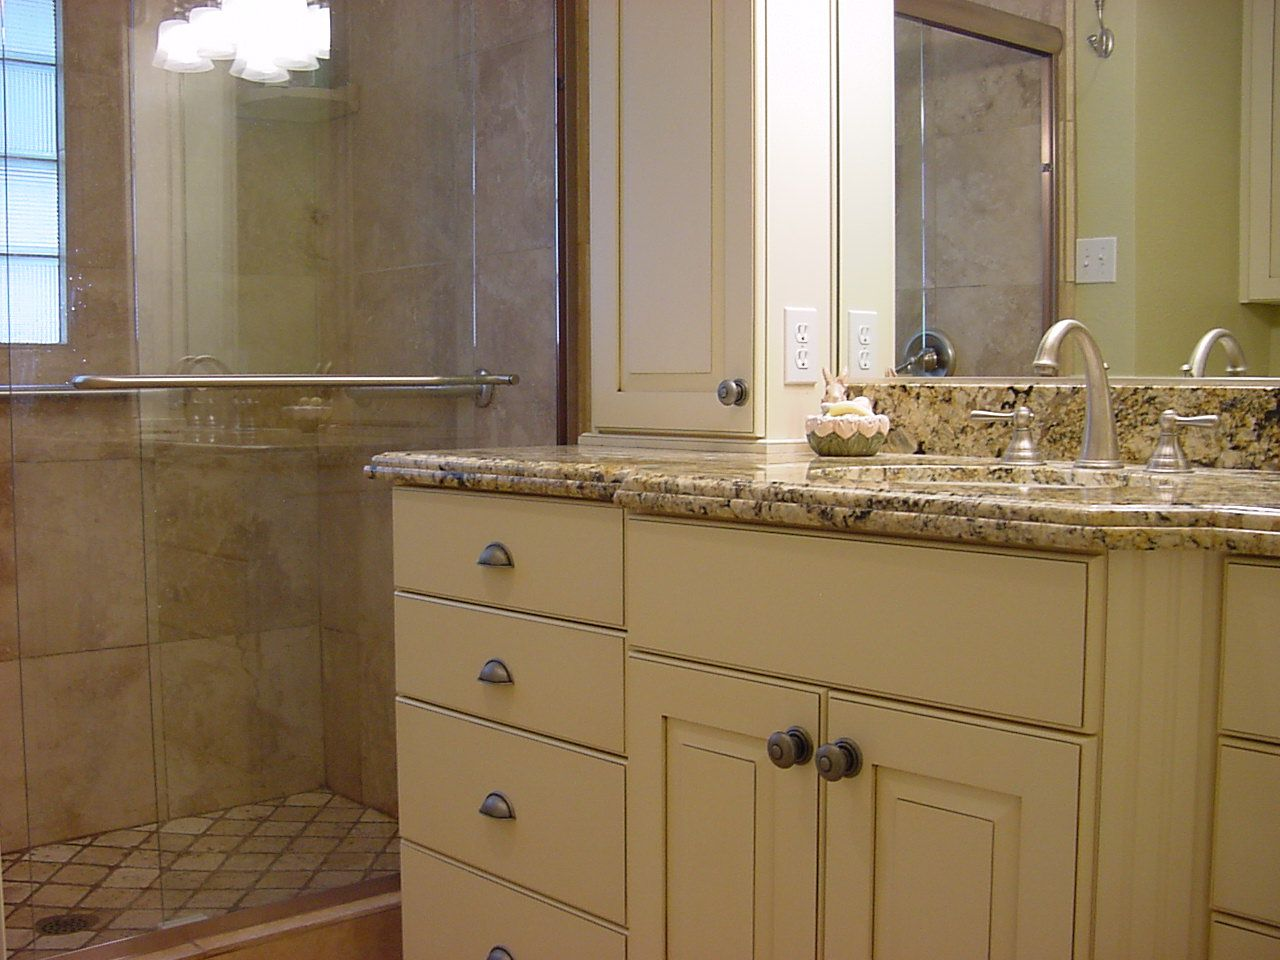 Bathroom Remodel Stone Counter Tops Cream Cabinets Goose Neck Brilliant Kitchen Bathroom Remodeling Ideas Decorating Inspiration